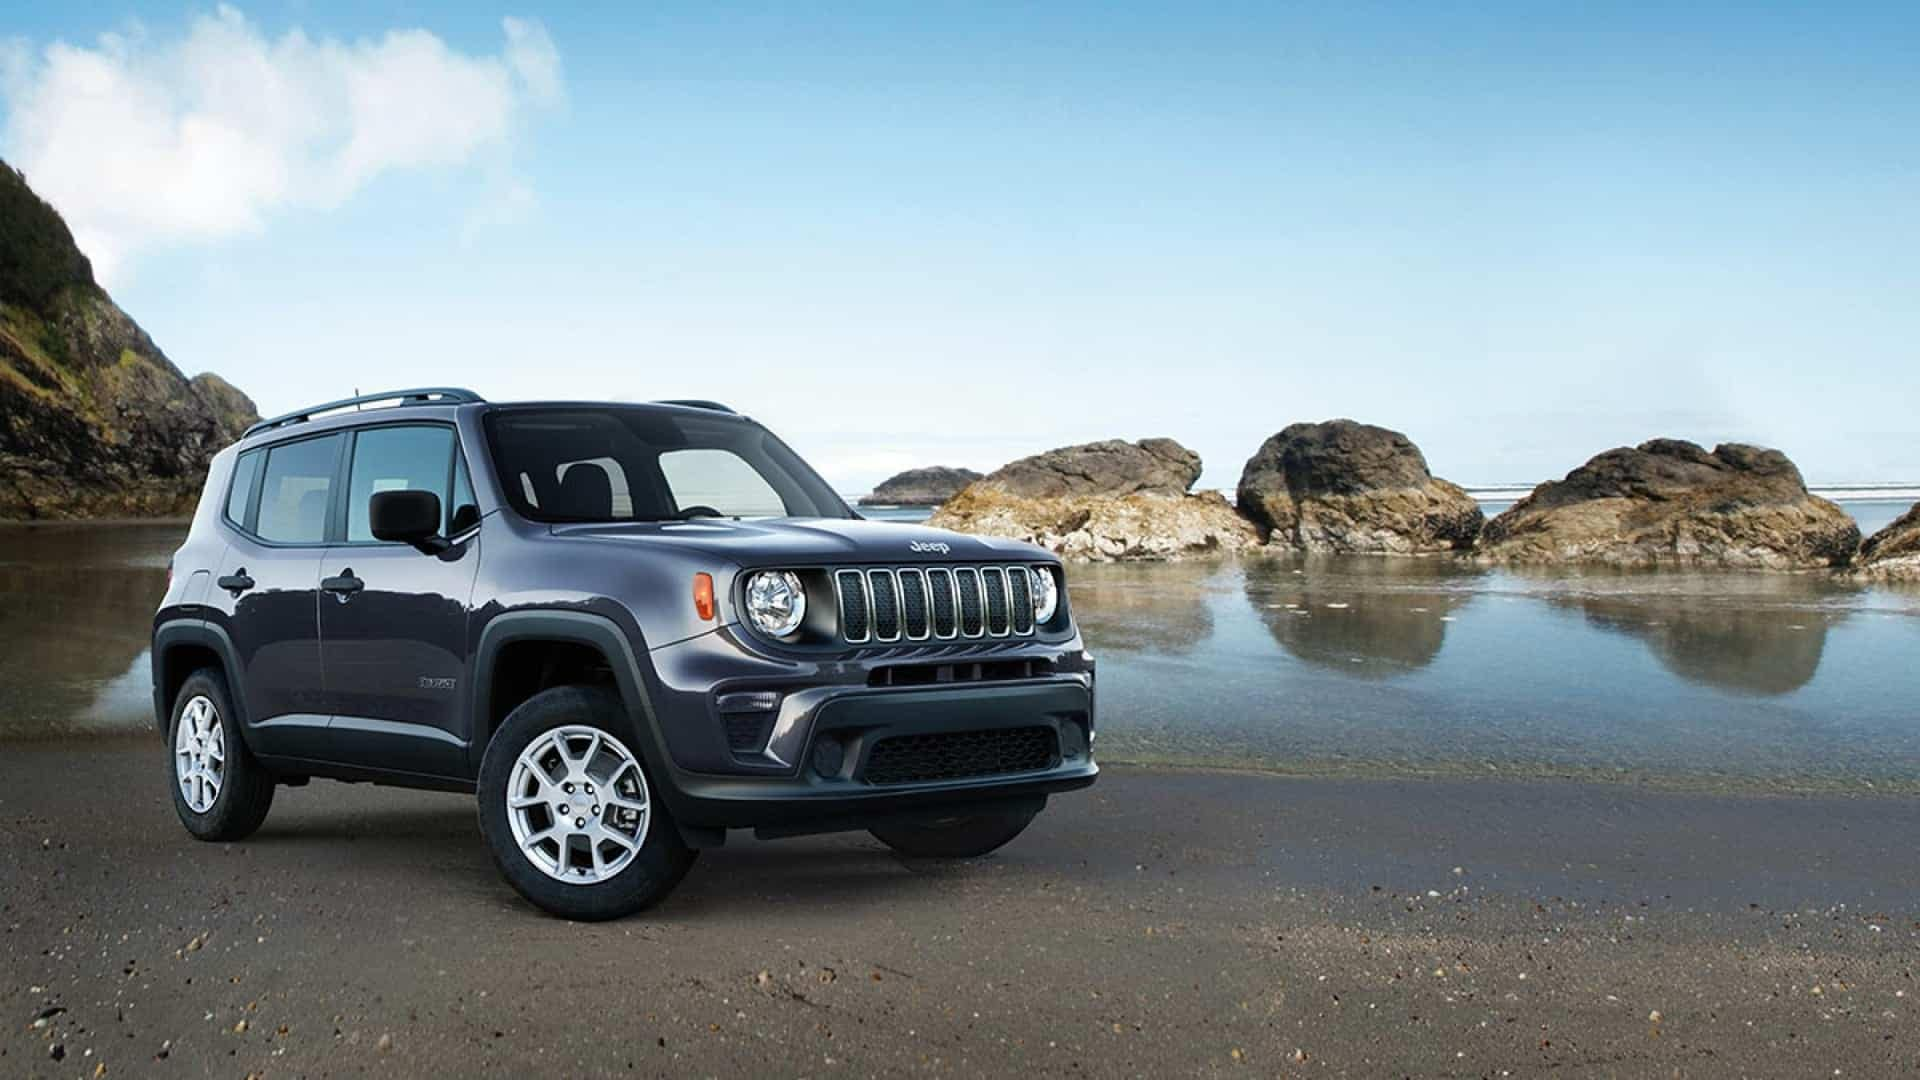 Buy, Lease, or Finance the 2019 Jeep Renegade near Longmont CO